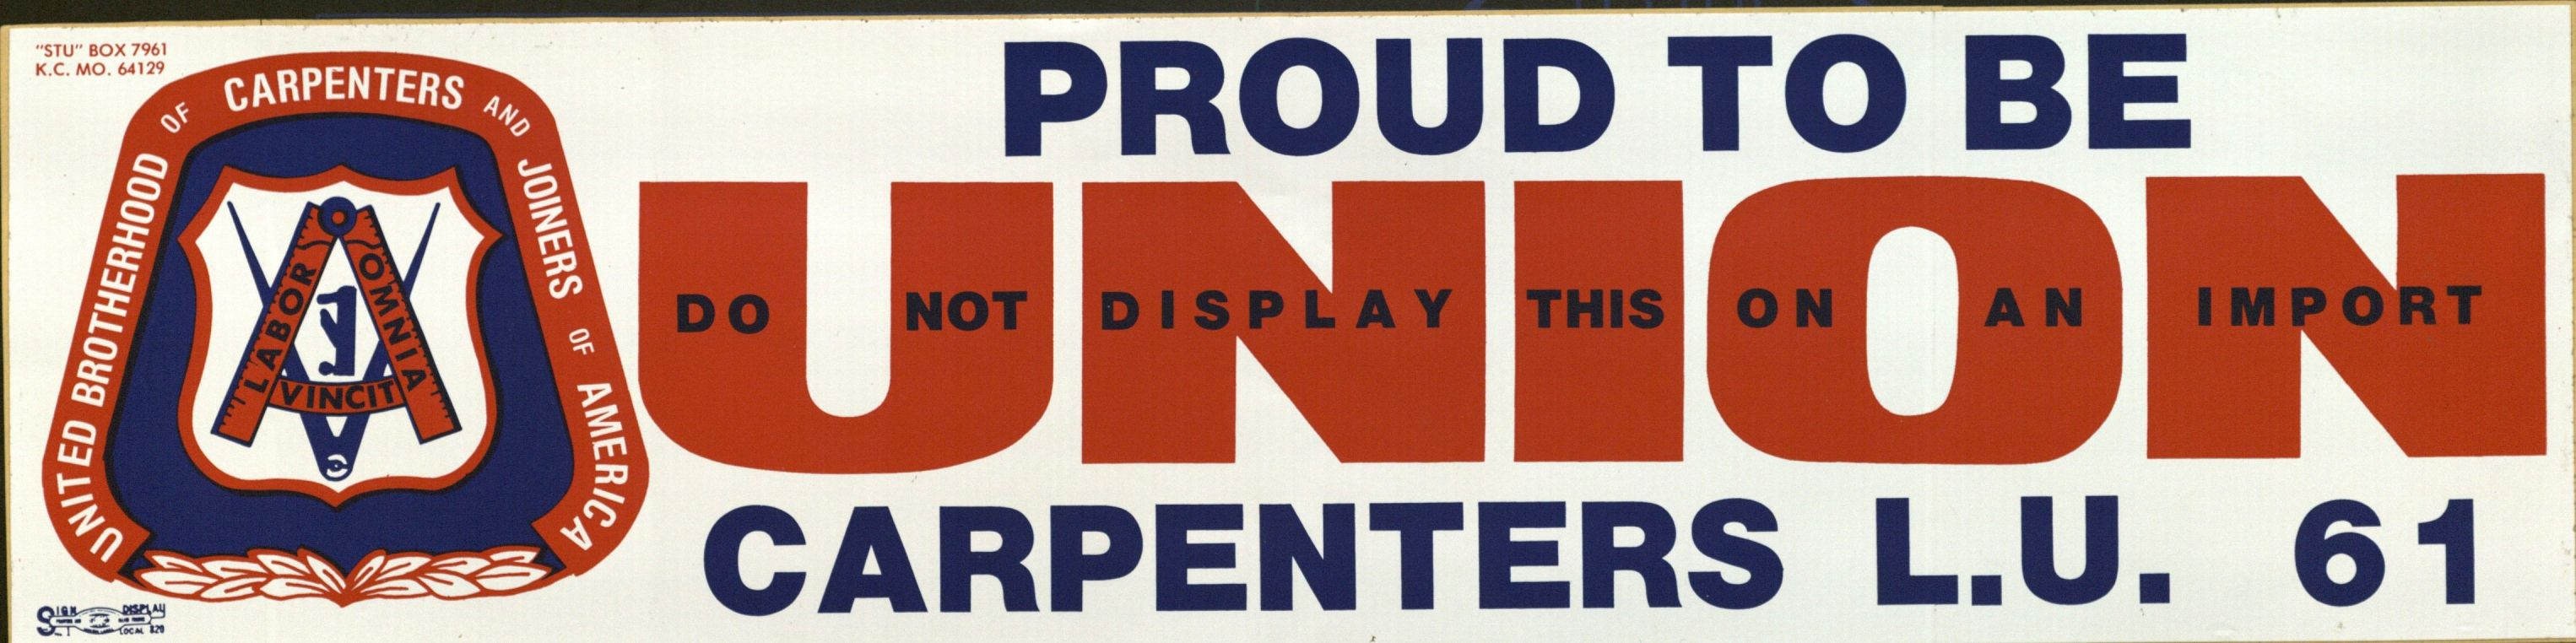 Bumper Sticker: Proud to Be Union